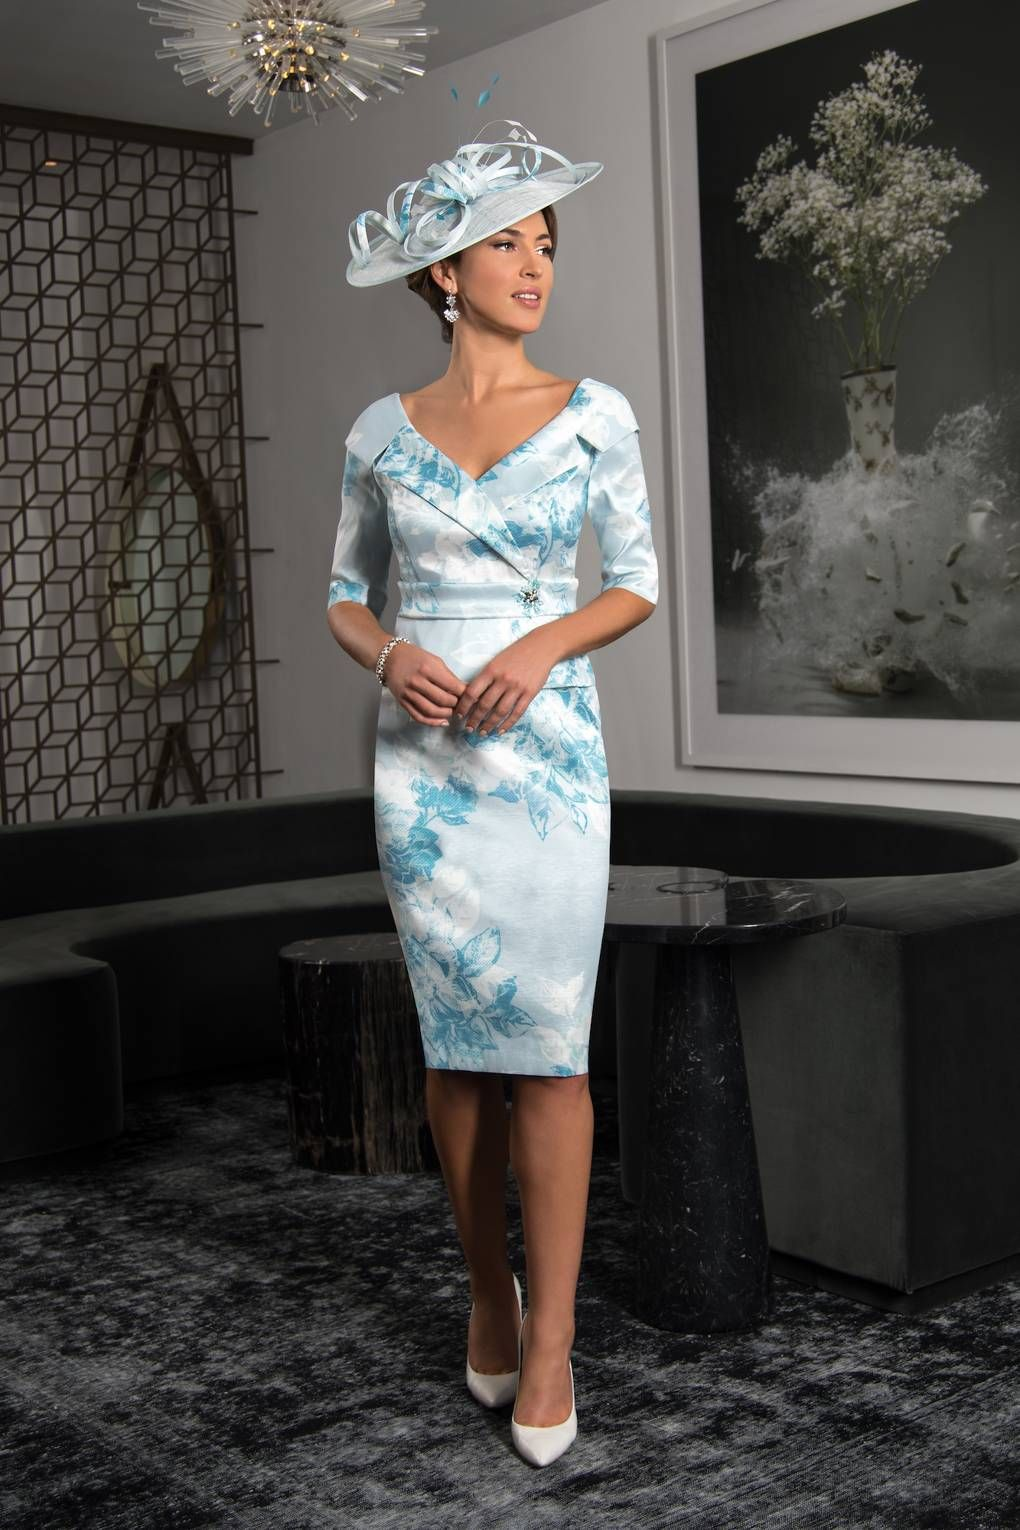 dbcff9c6072d The most stylish mother of the bride and groom dresses for spring summer  2019 #motherofthebride #motherofthegroom